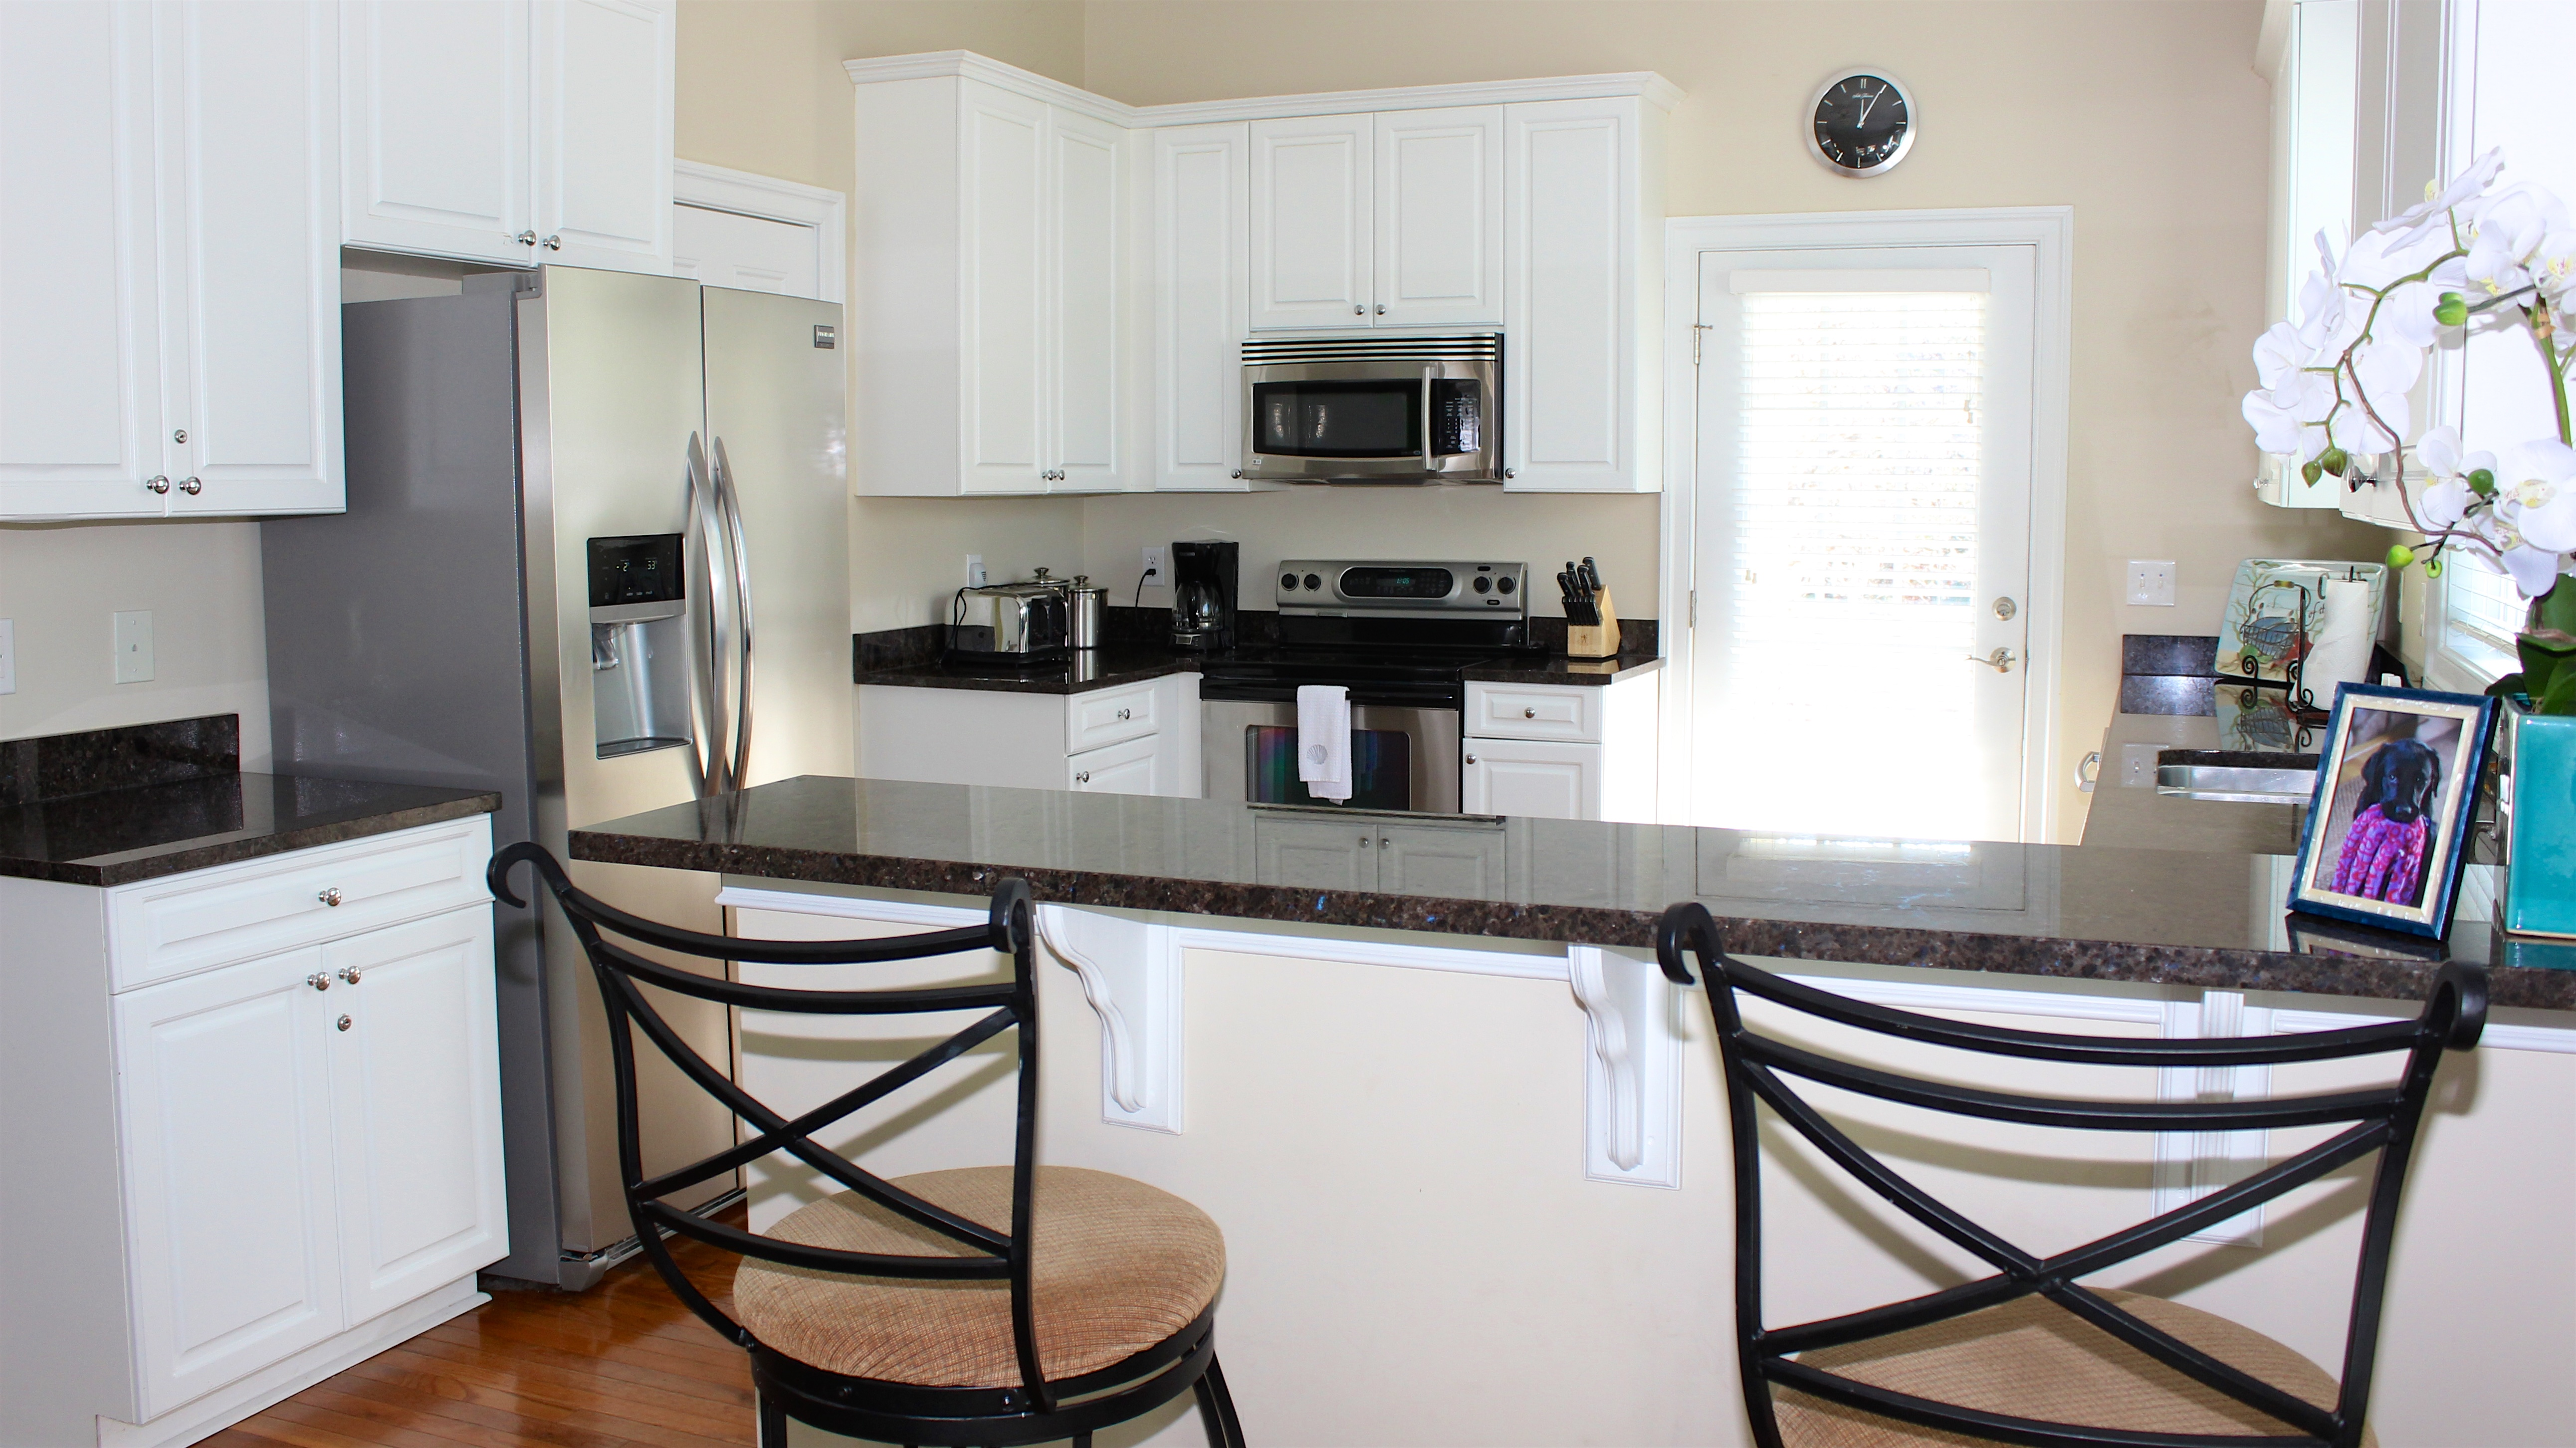 The kitchen features granite counters, custom cabinetry, and seating for 2.